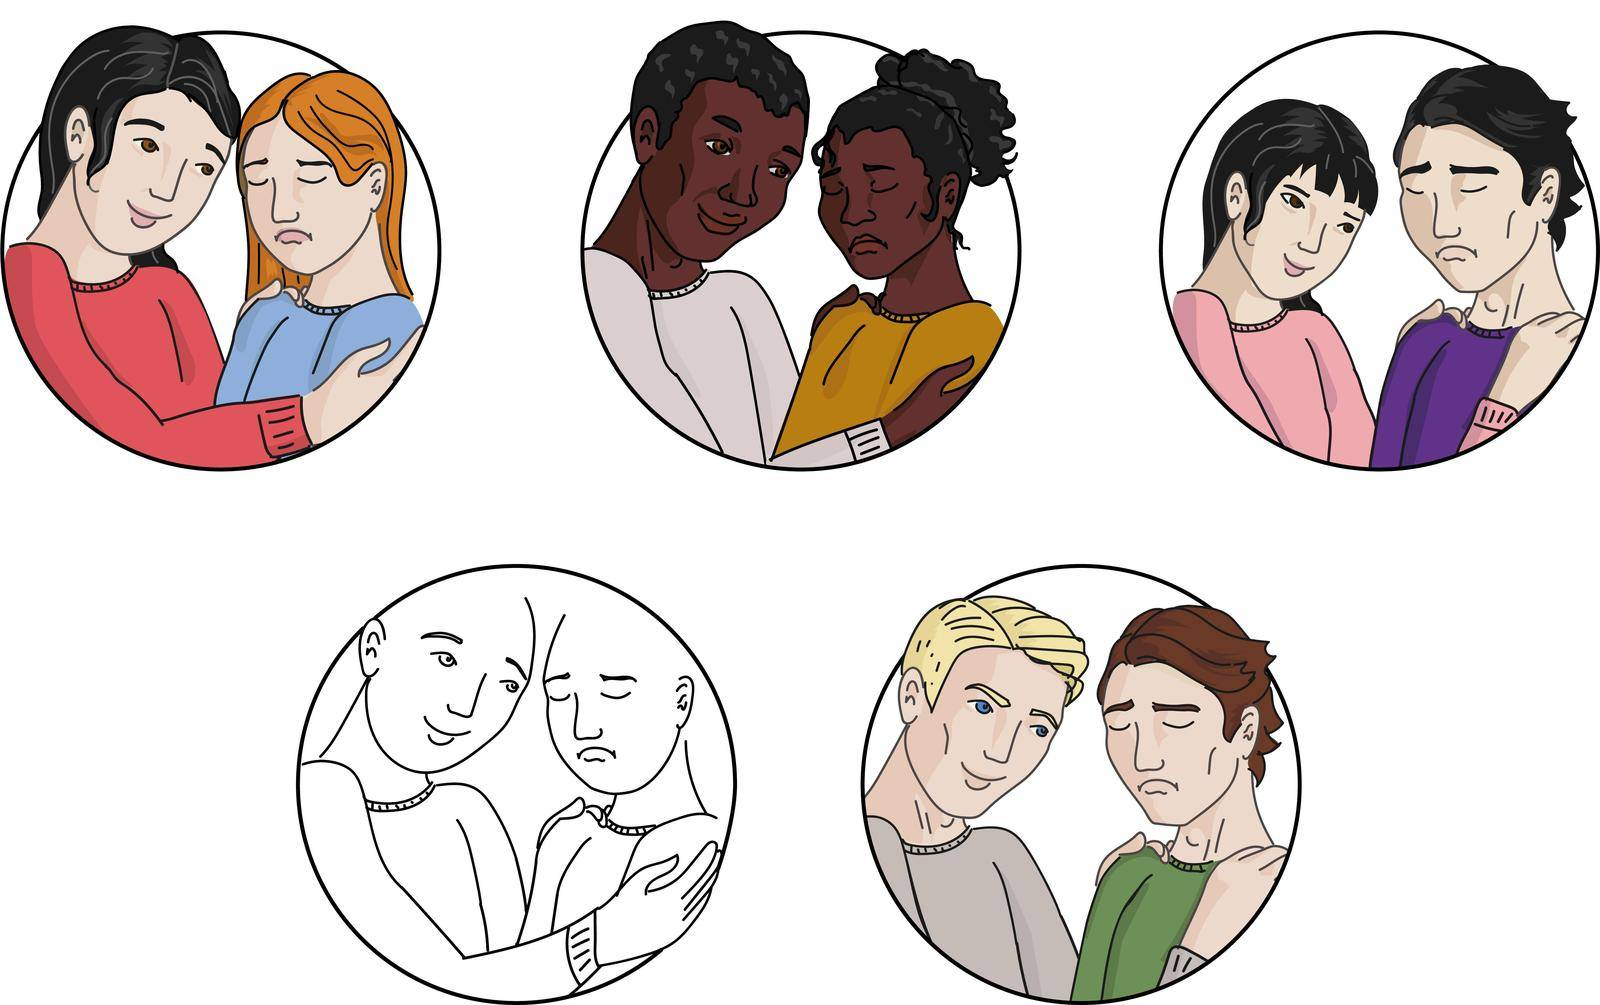 People are calming each other. Love, diversity by Arinase